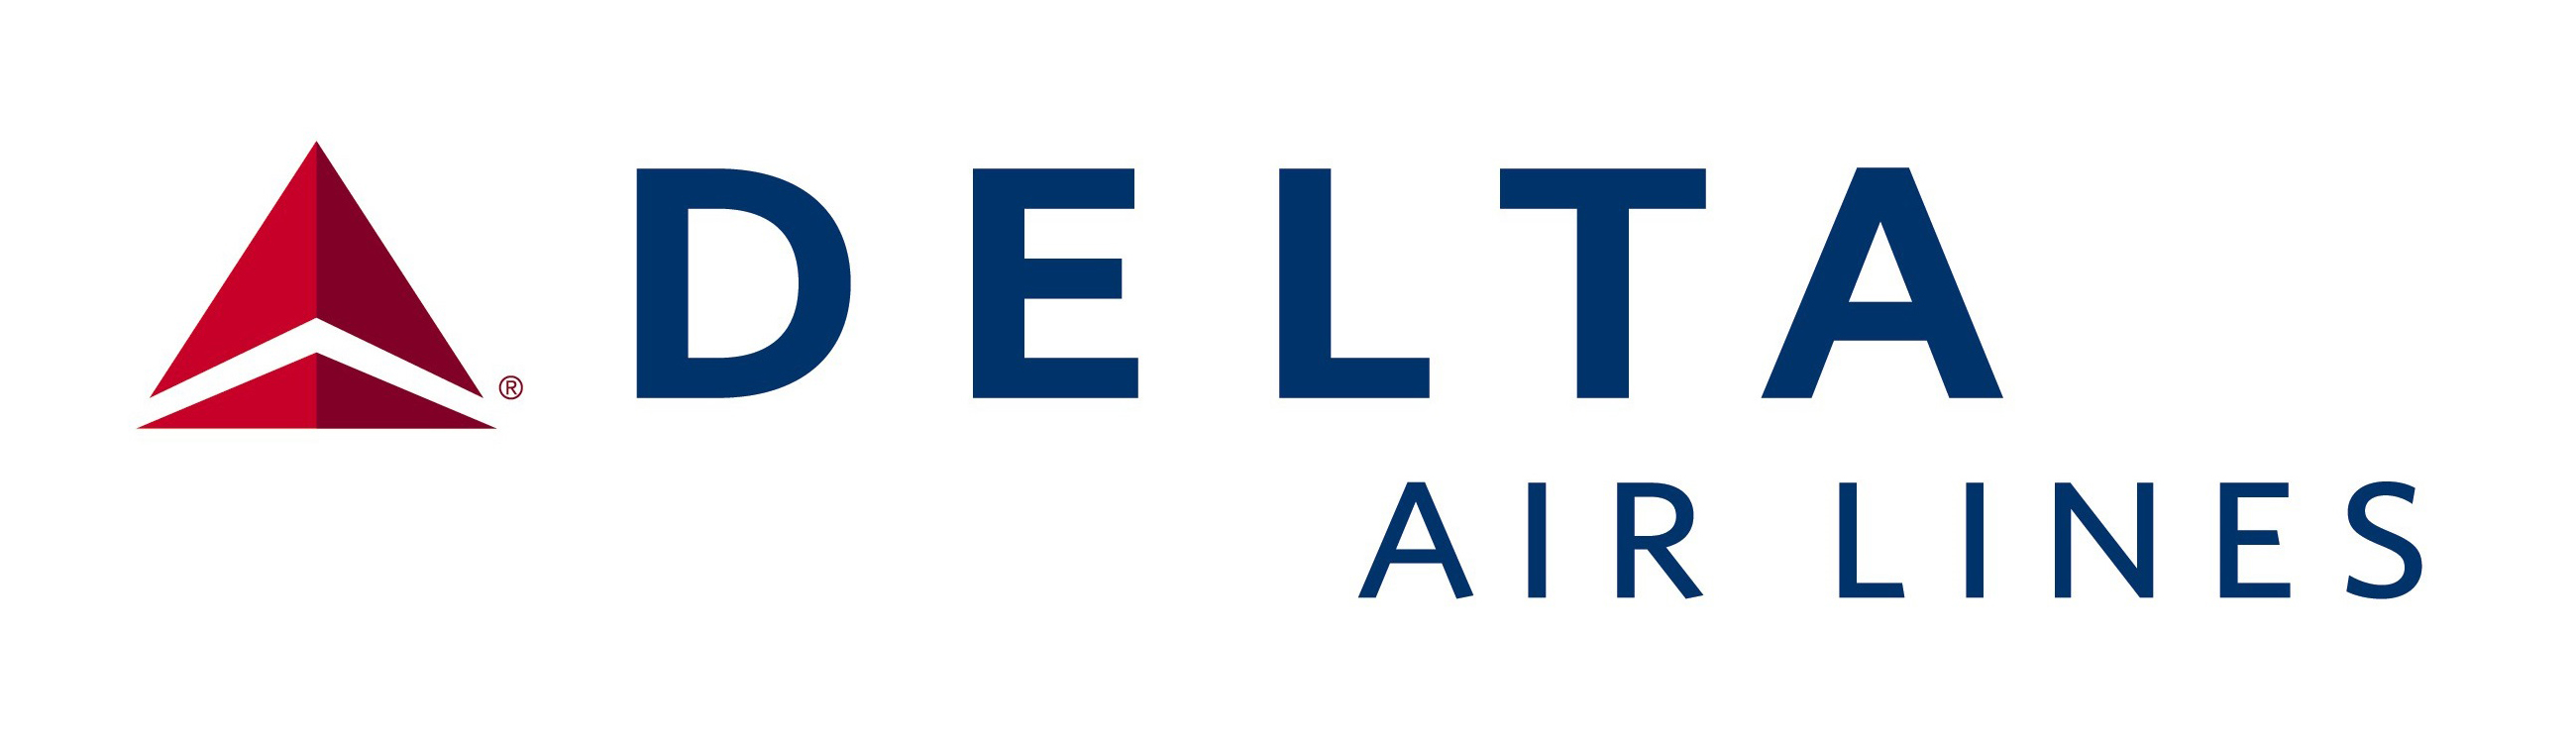 Image result for delta airlines symbol